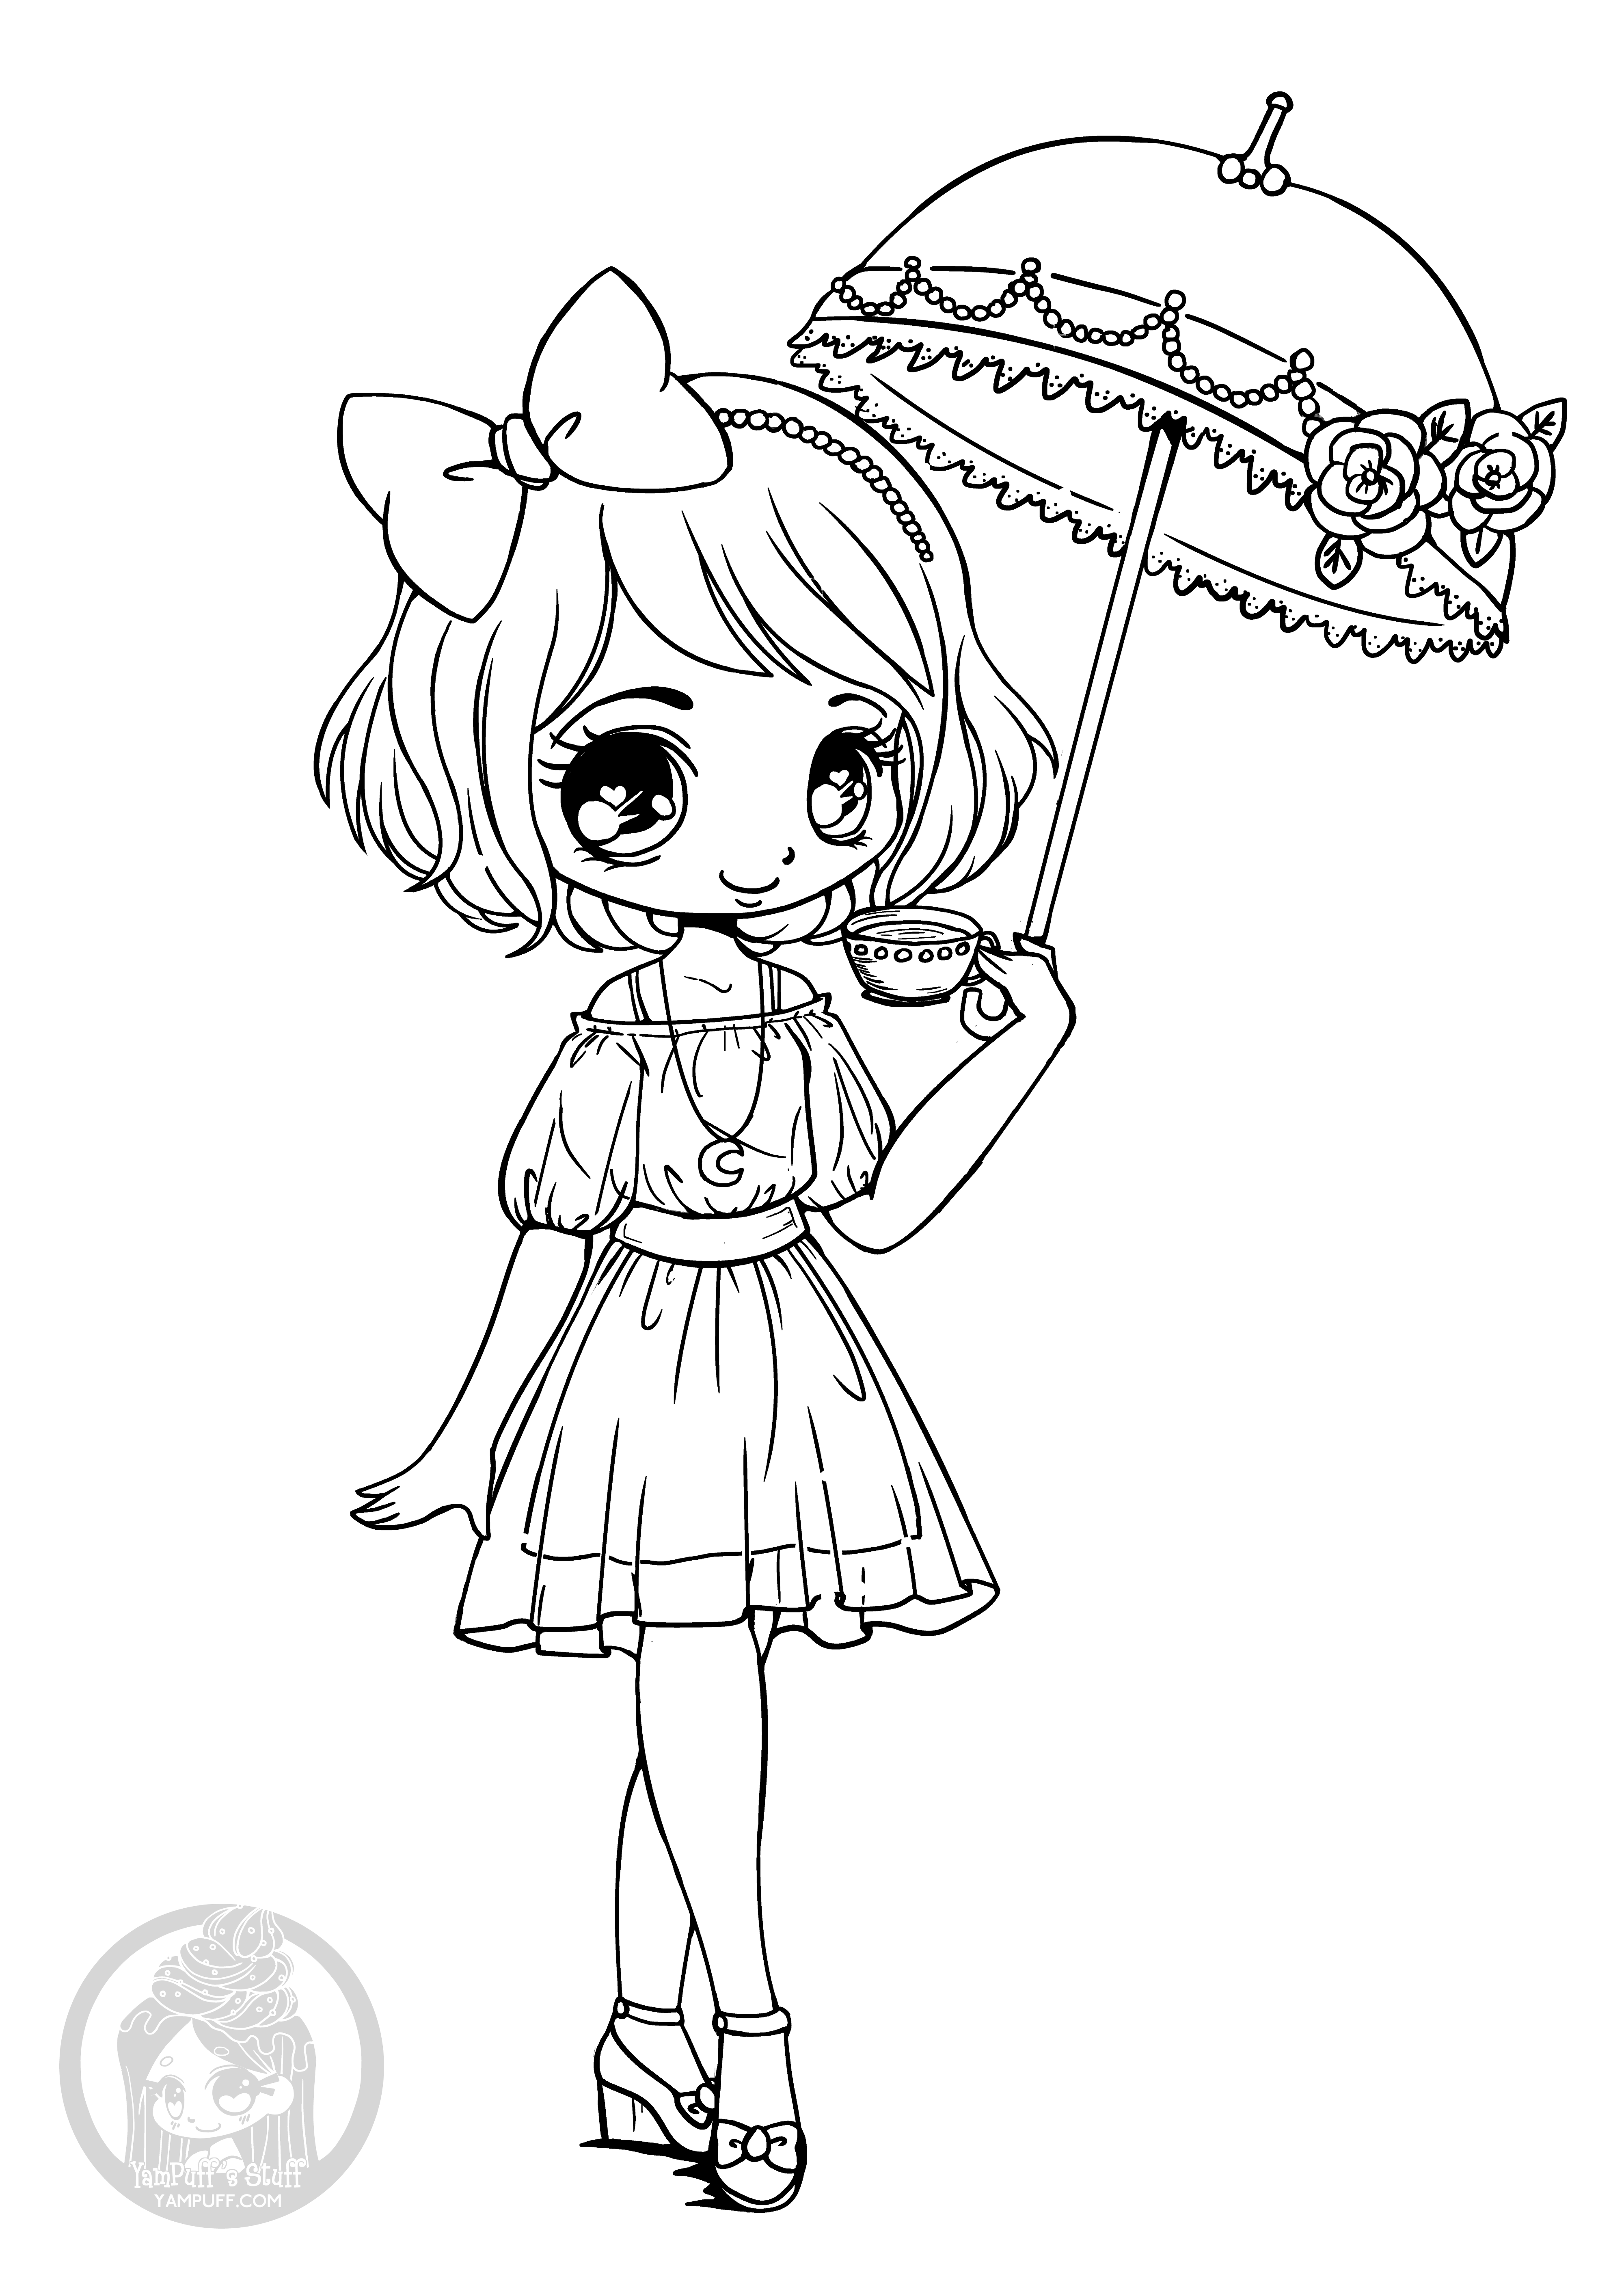 coloring pages chibi get this easy printable chibi coloring pages for children coloring chibi pages